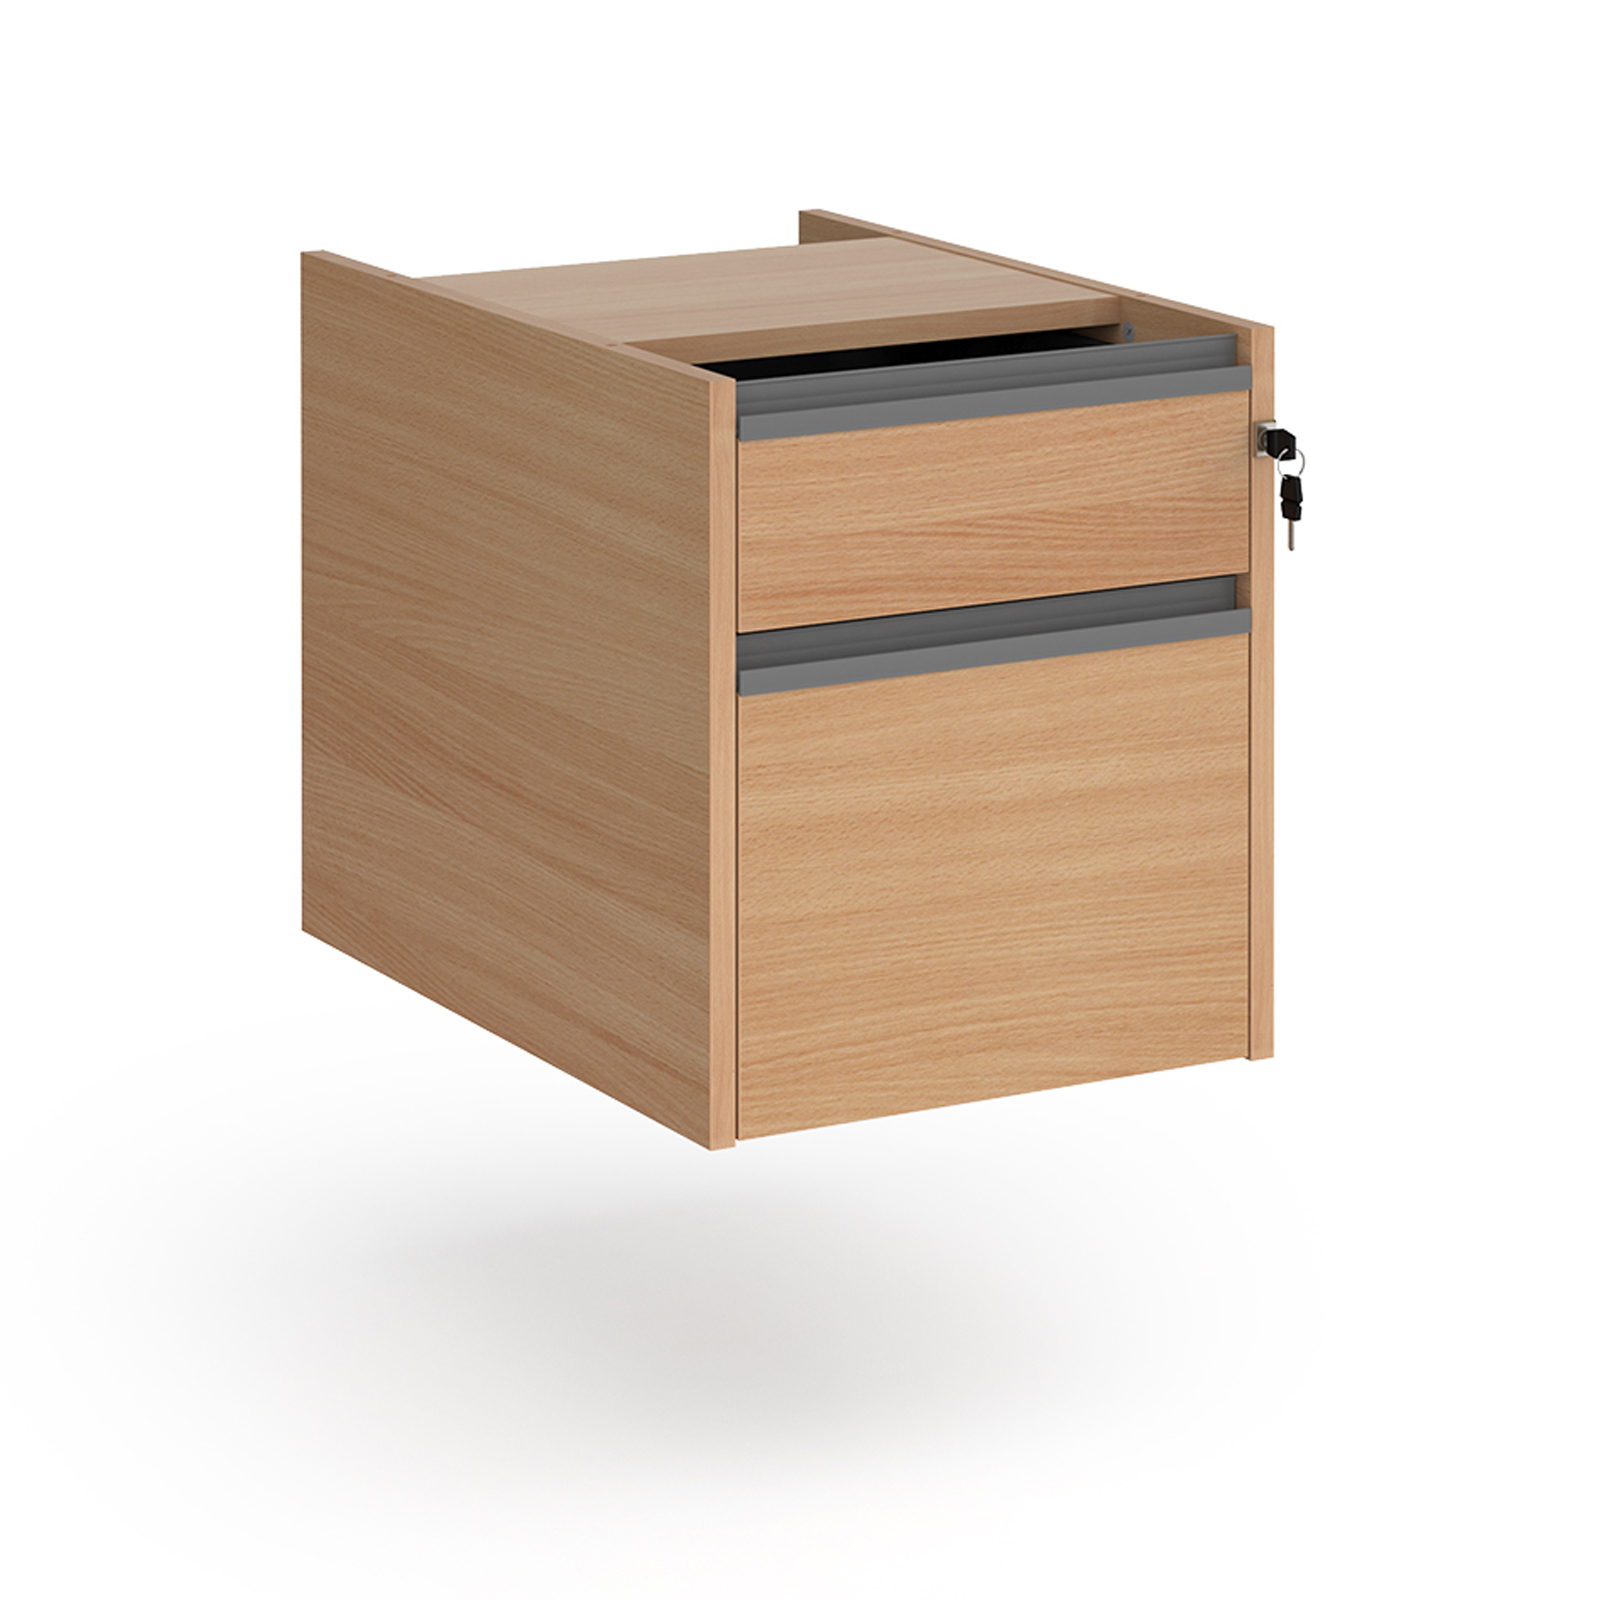 Desk Drawers Contract fixed pedestal